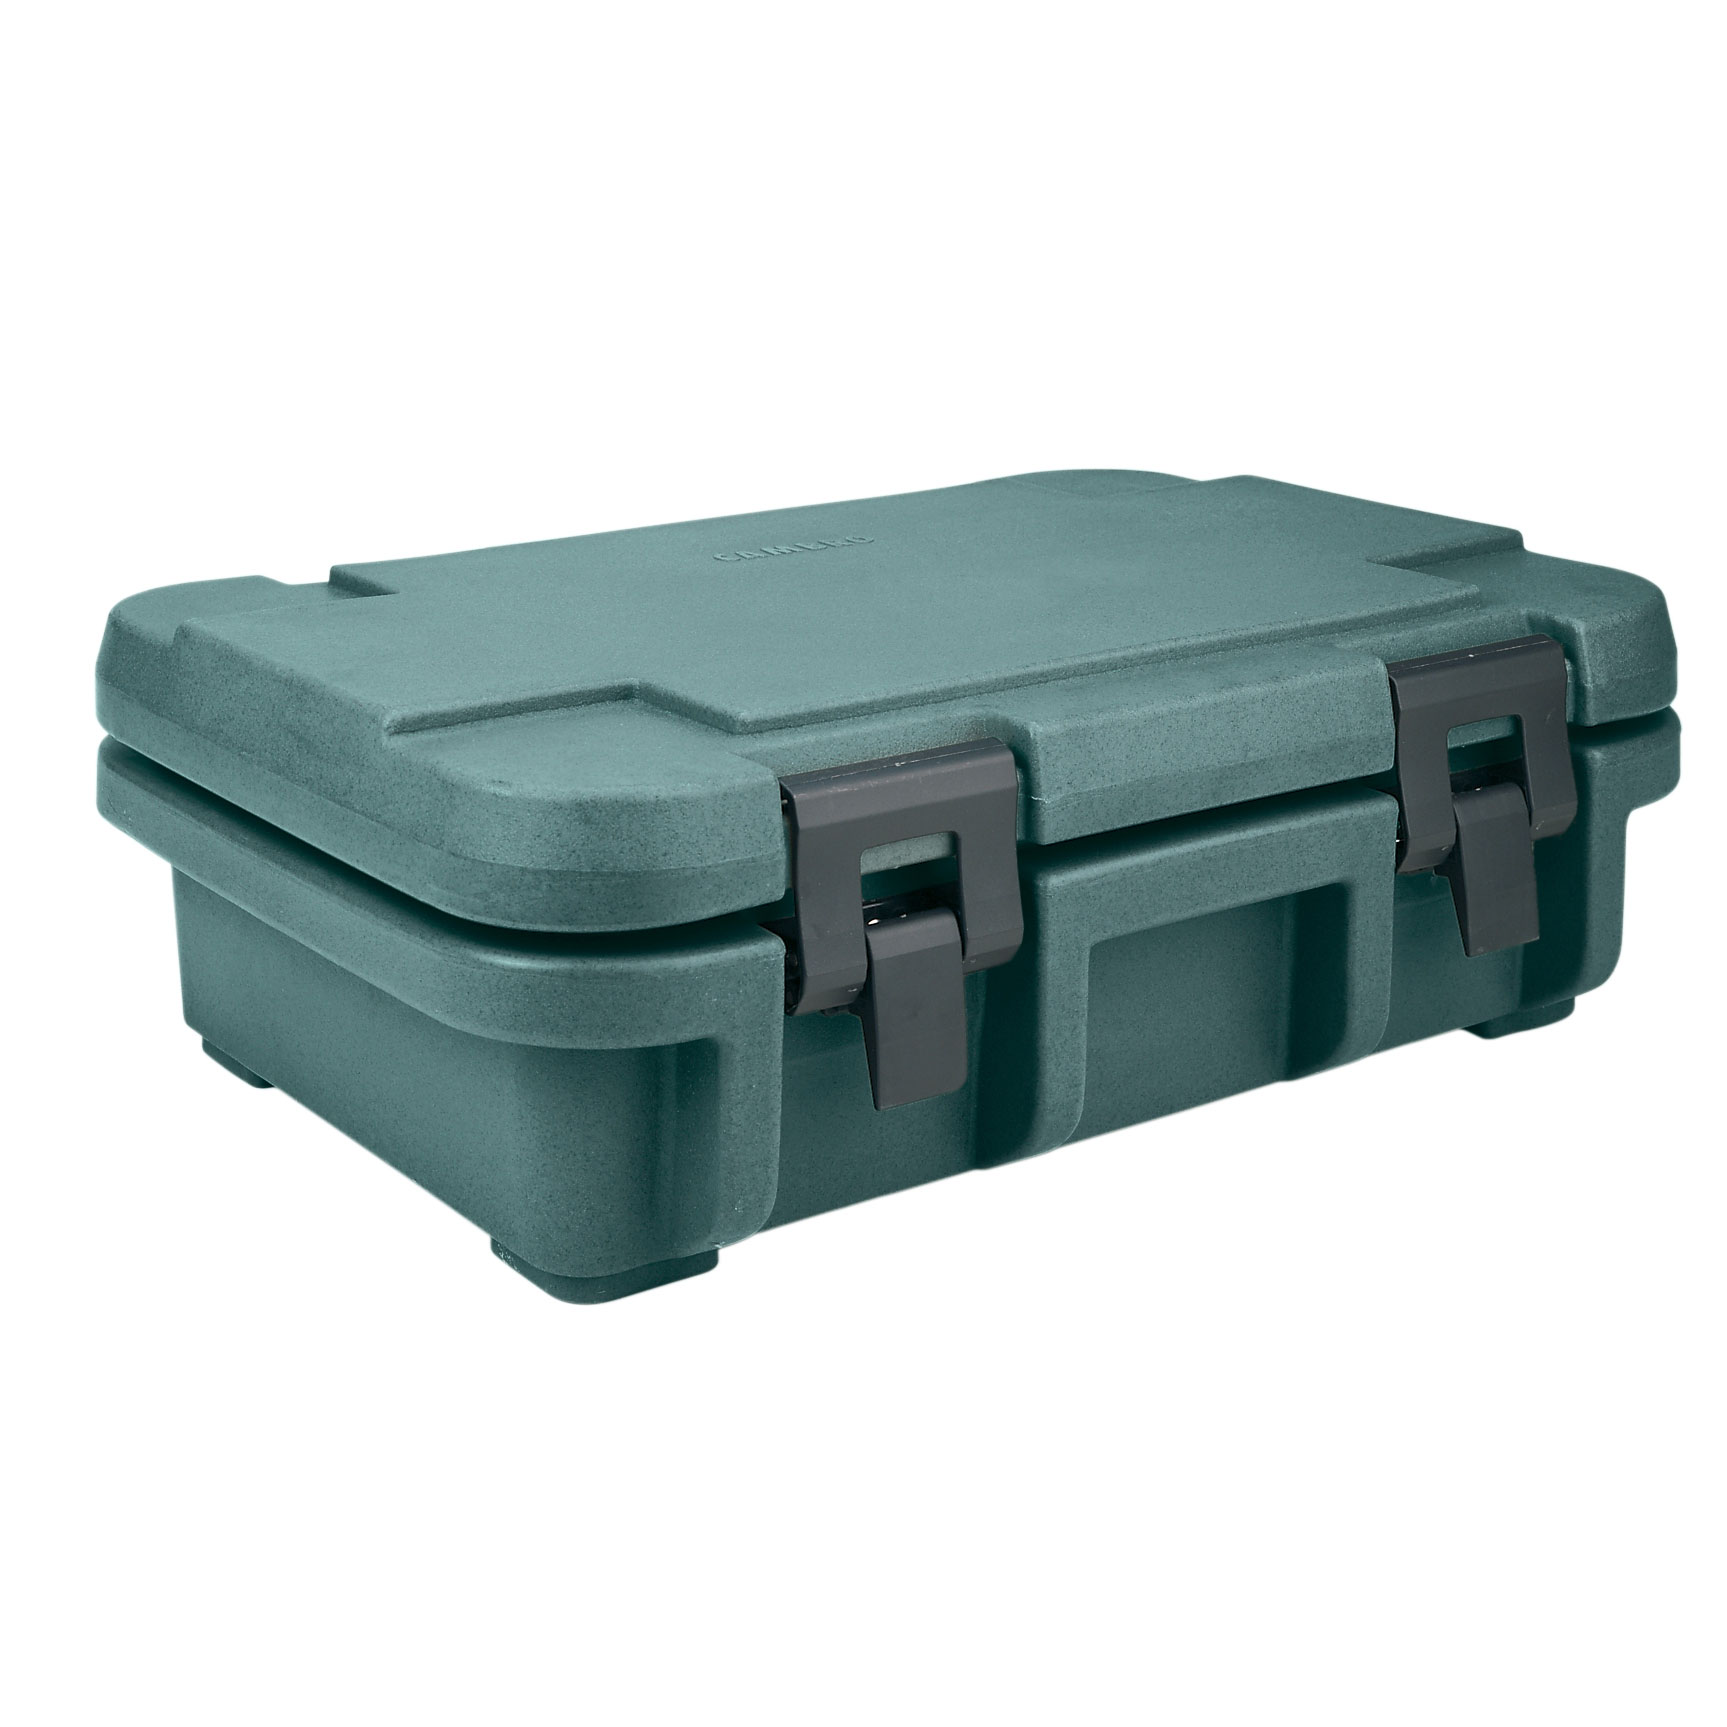 Cambro UPC140192 food carrier, insulated plastic